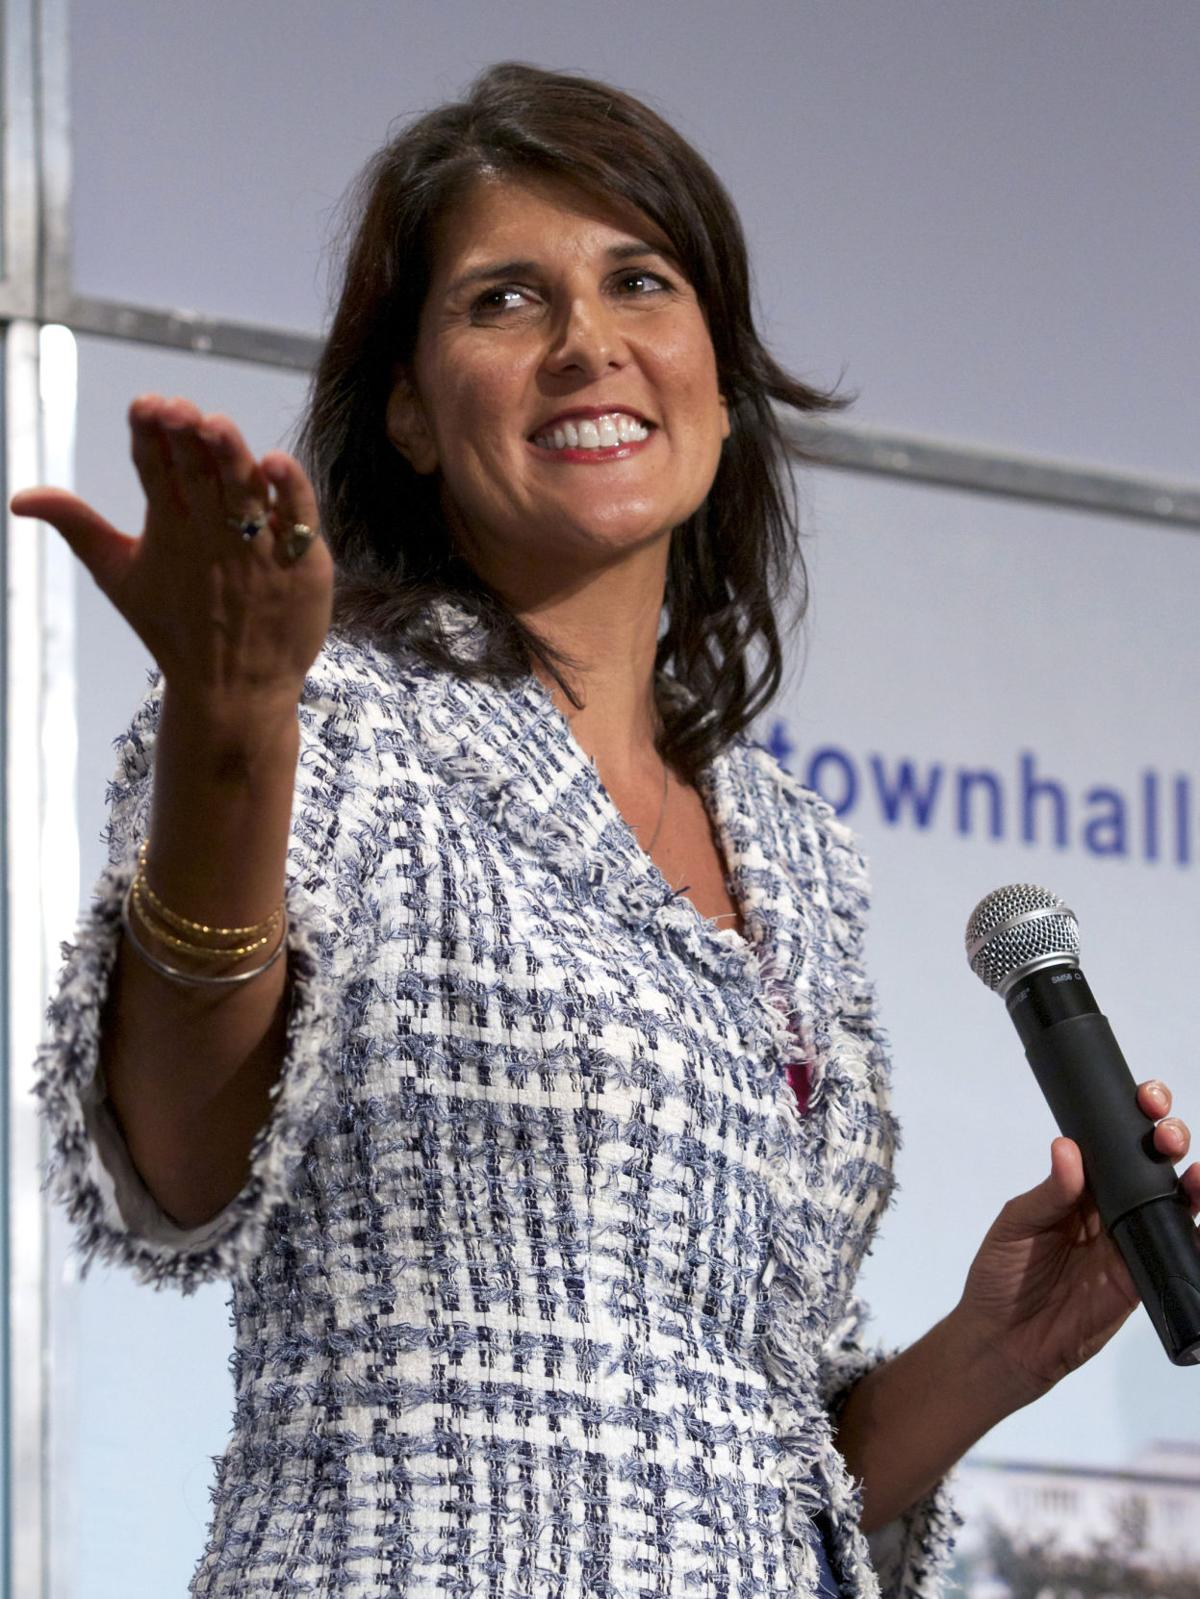 Gov. Haley is on the cellphone grid — but out of public view